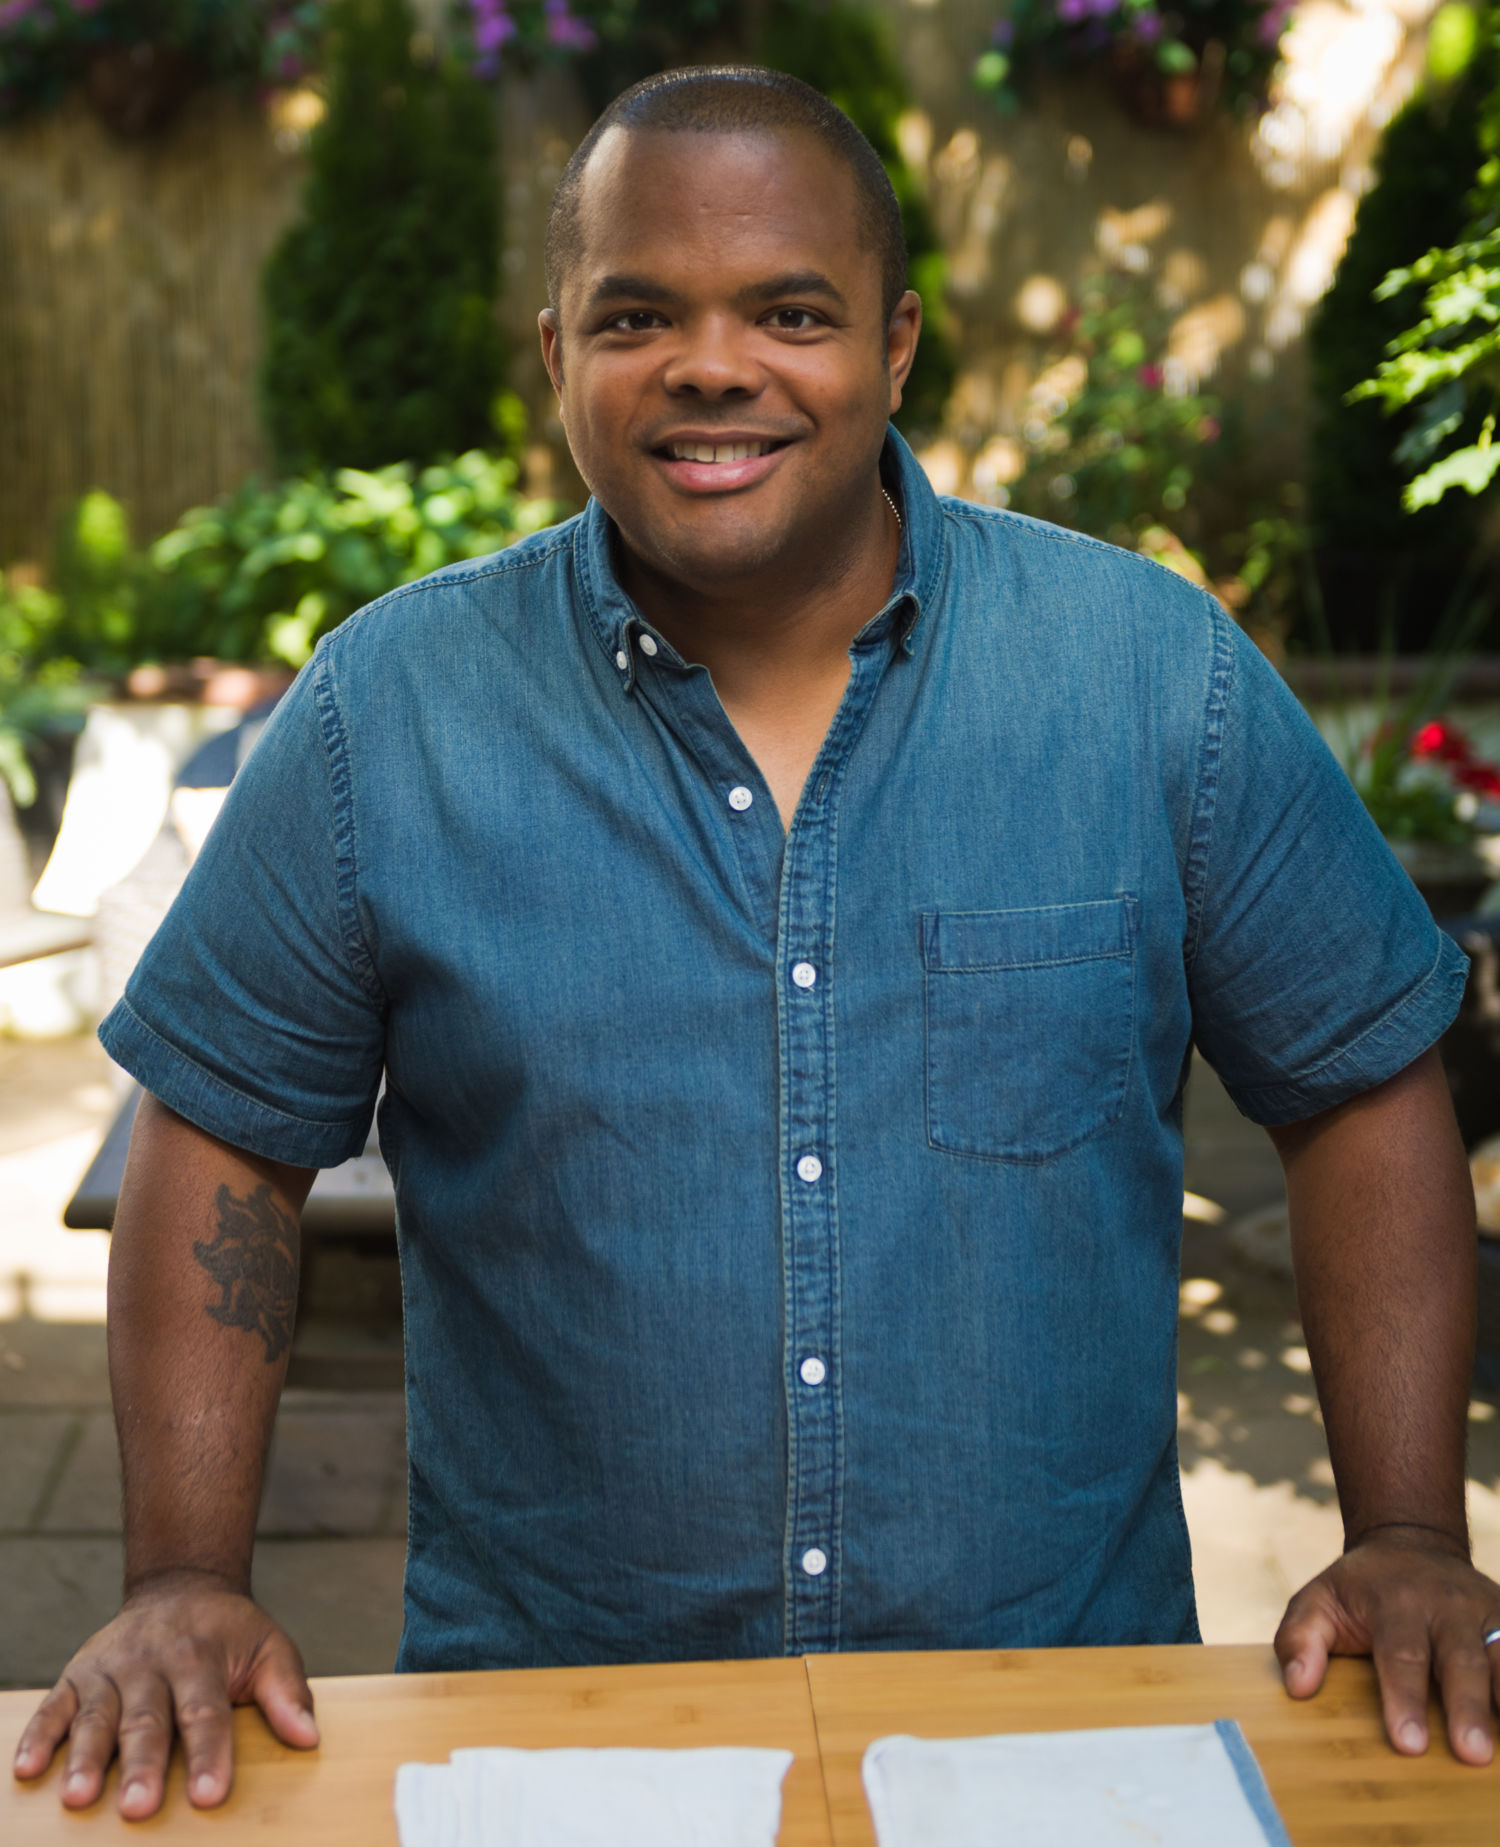 Roger Mooking of Man Fire Food shares grilling advice